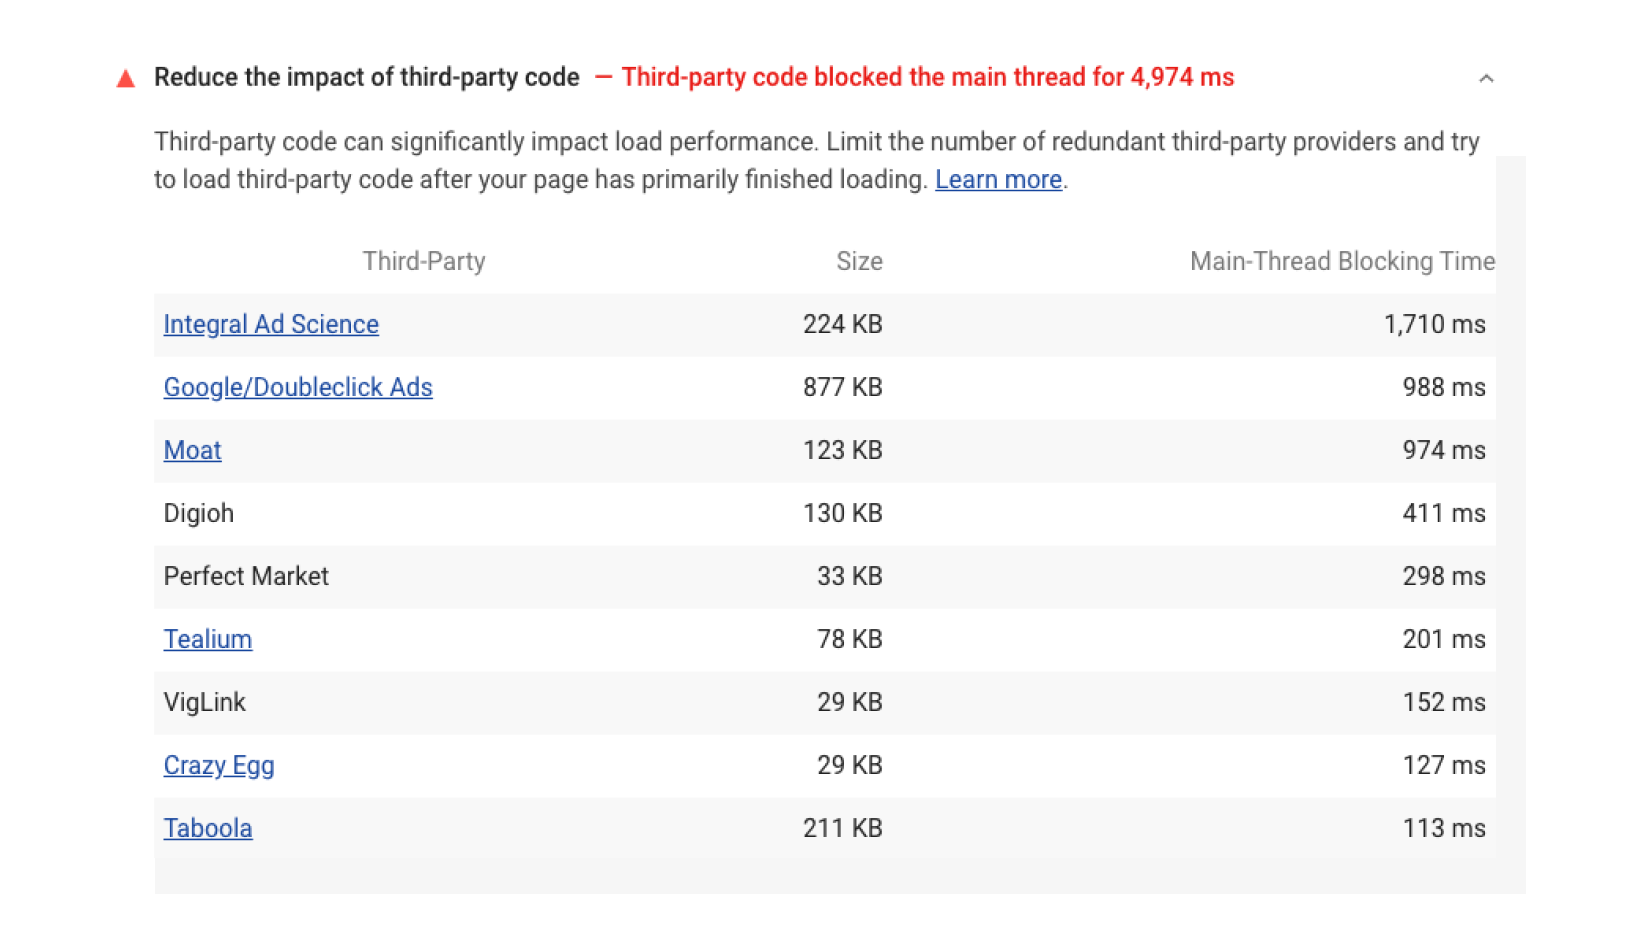 A screenshot of the Lighthouse Reduce the impact of third-party code audit